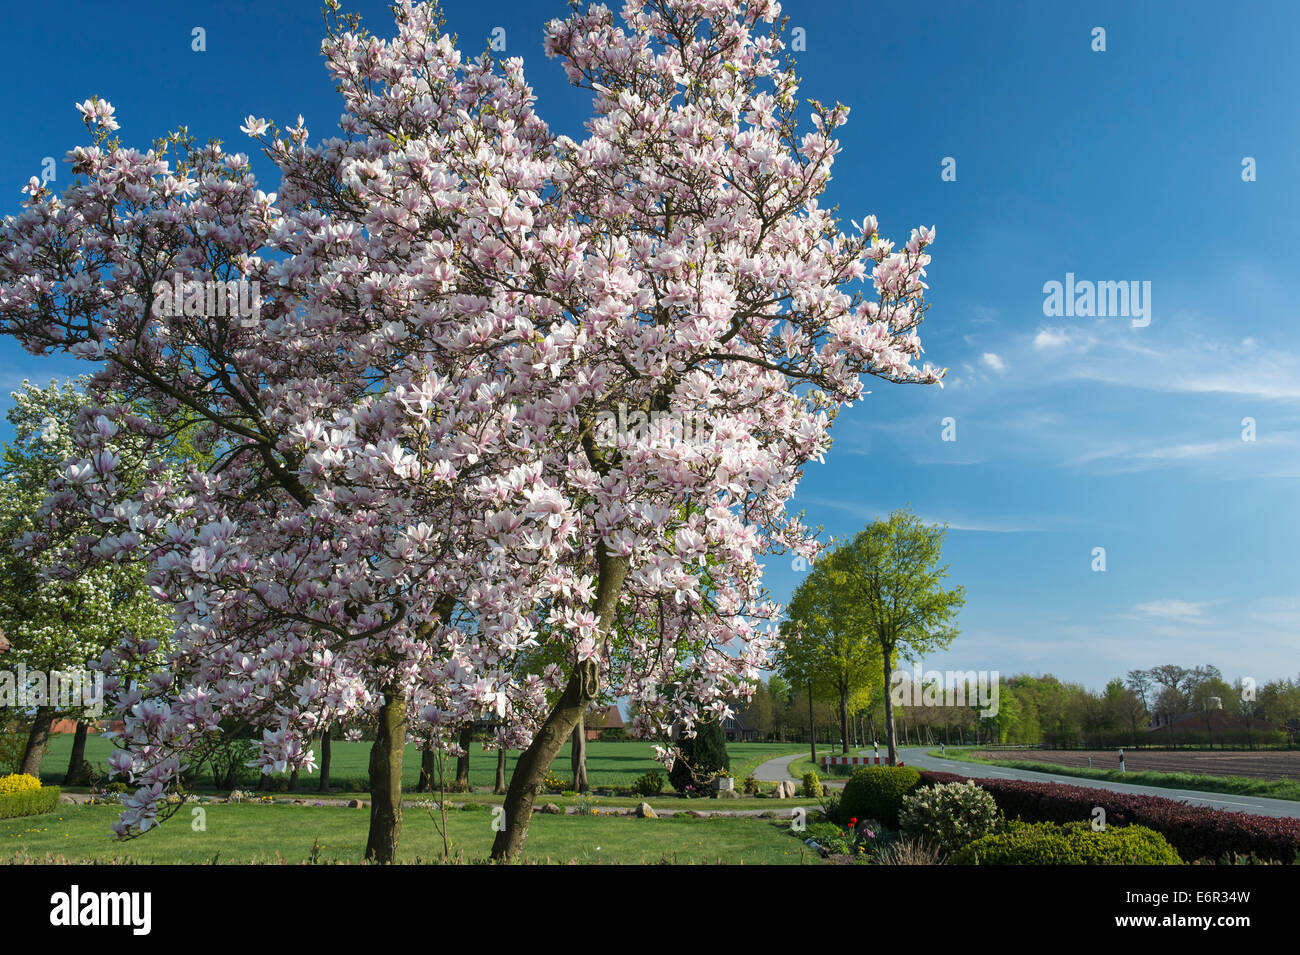 Blooming Magnolias Trees Stock Photos Blooming Magnolias Trees